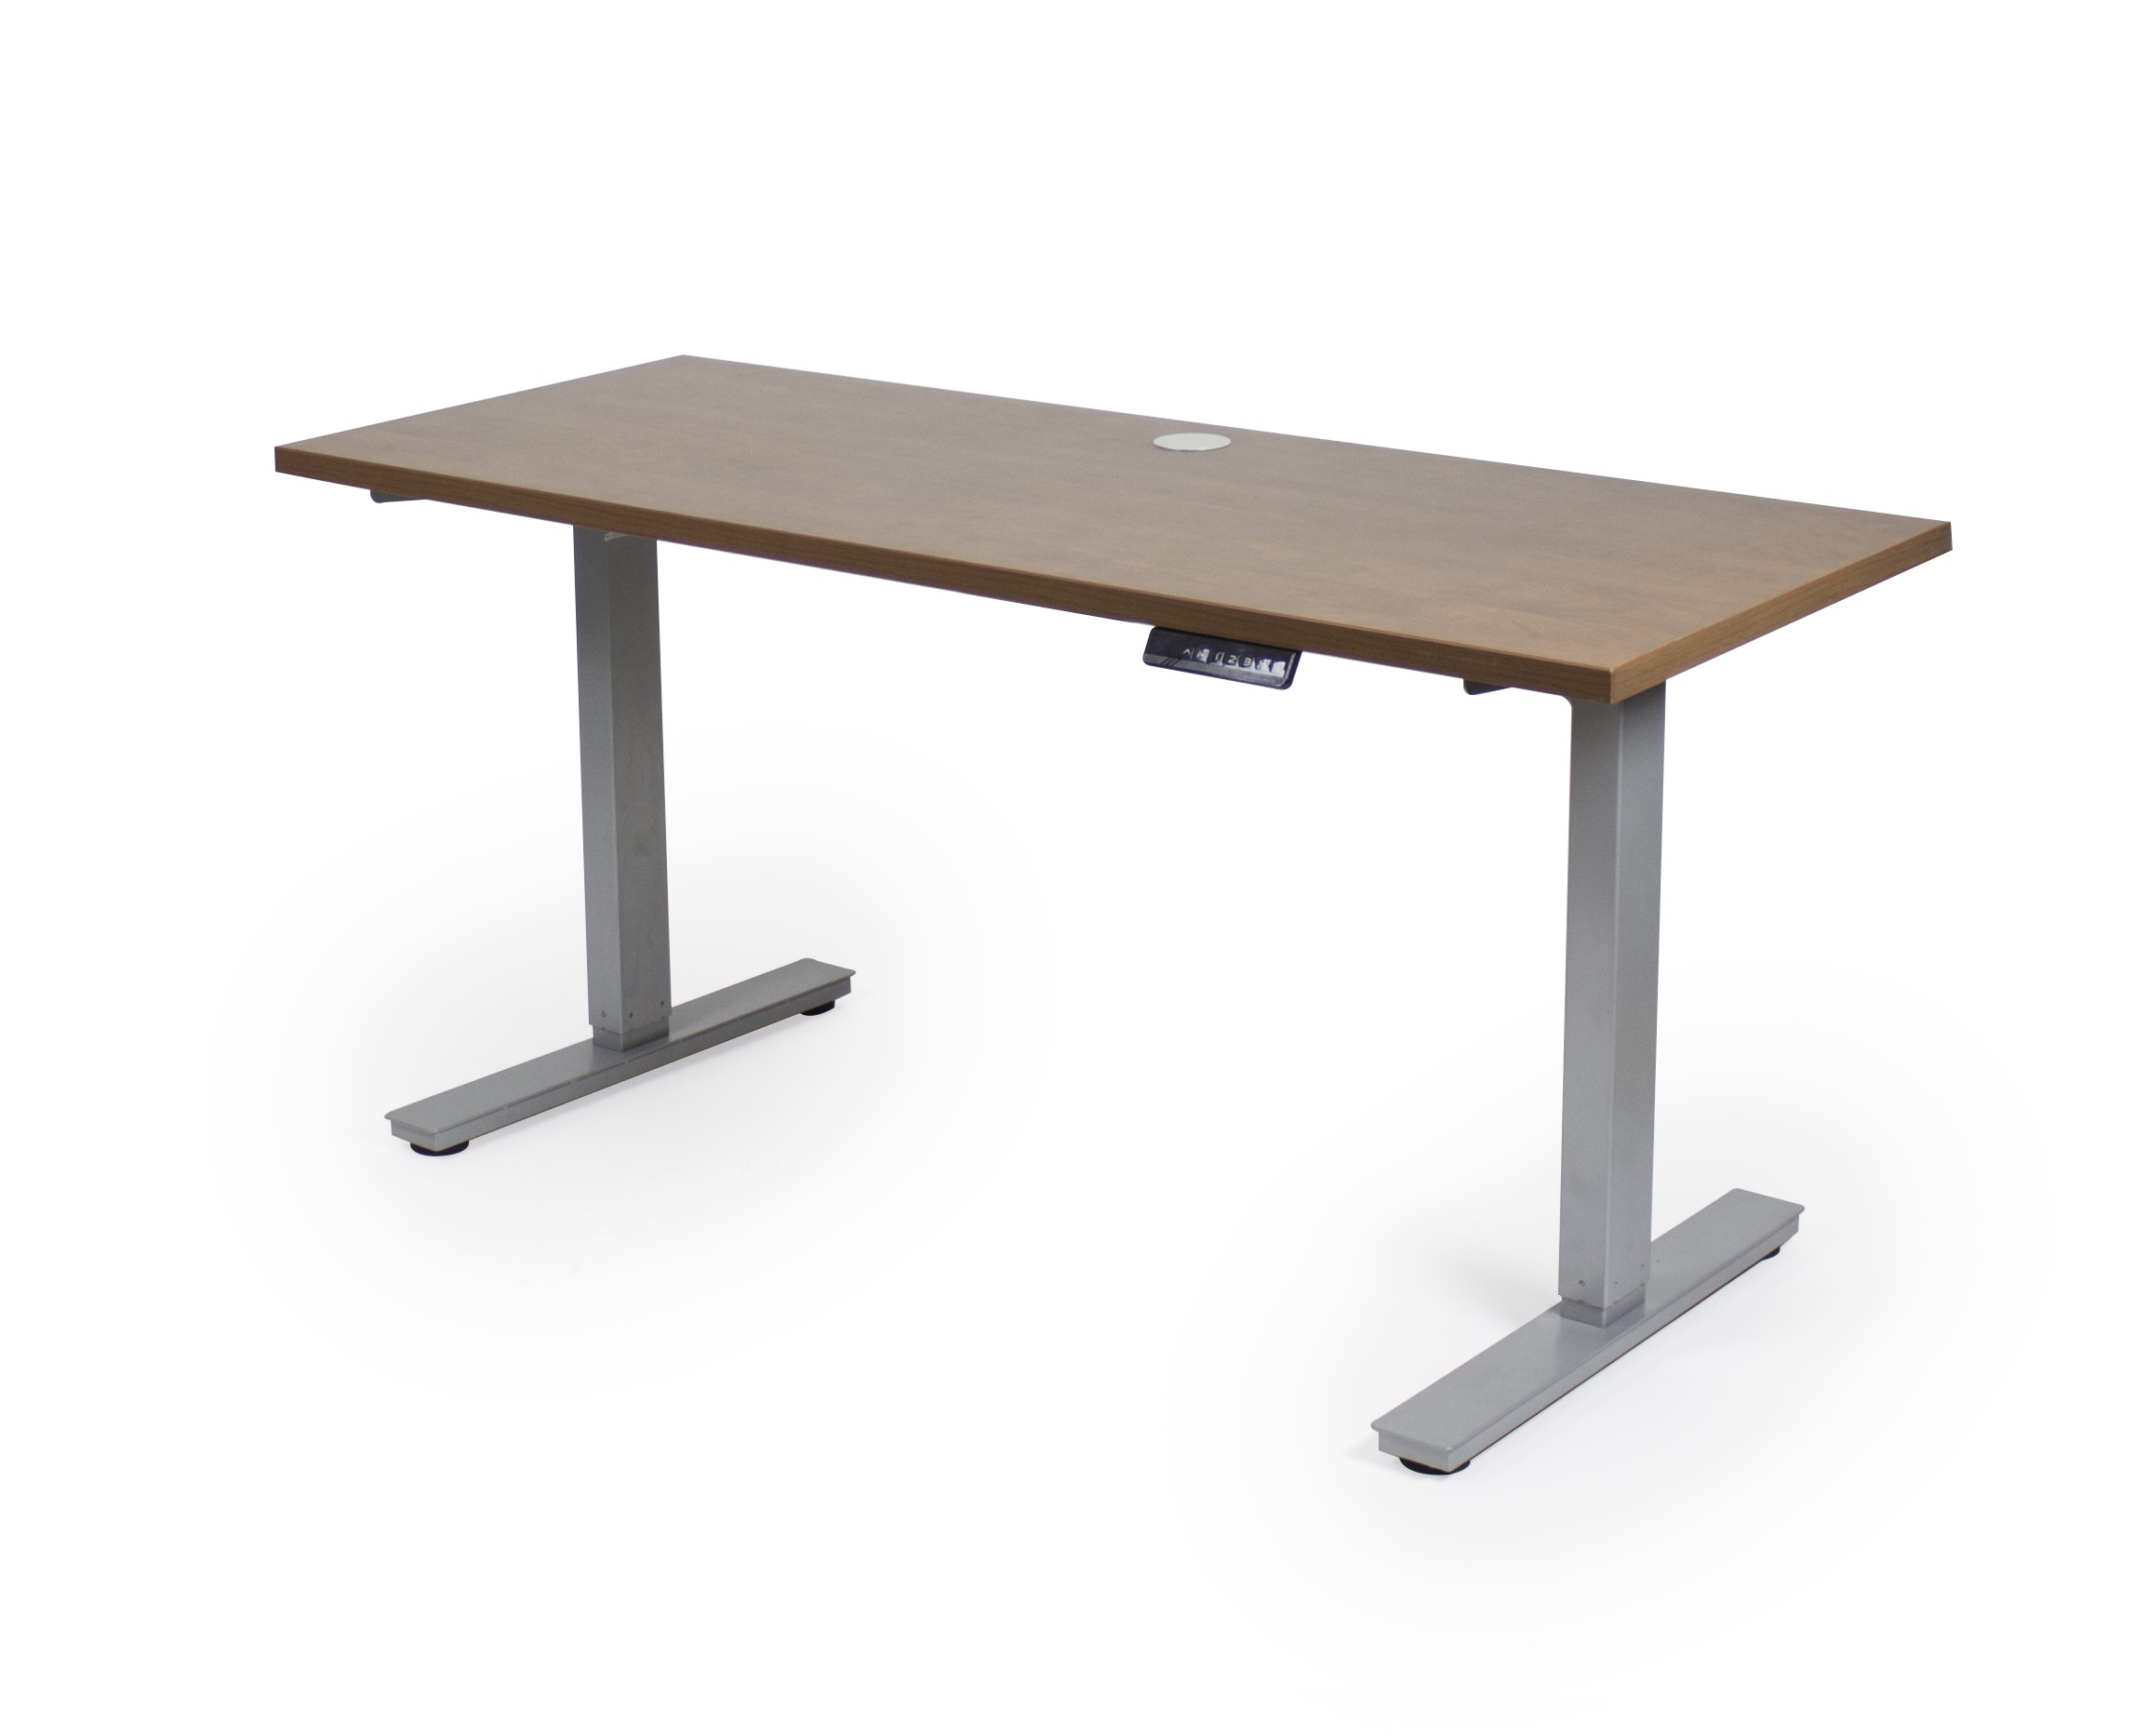 Basecamp Standpoint Height Adjustable Table Office